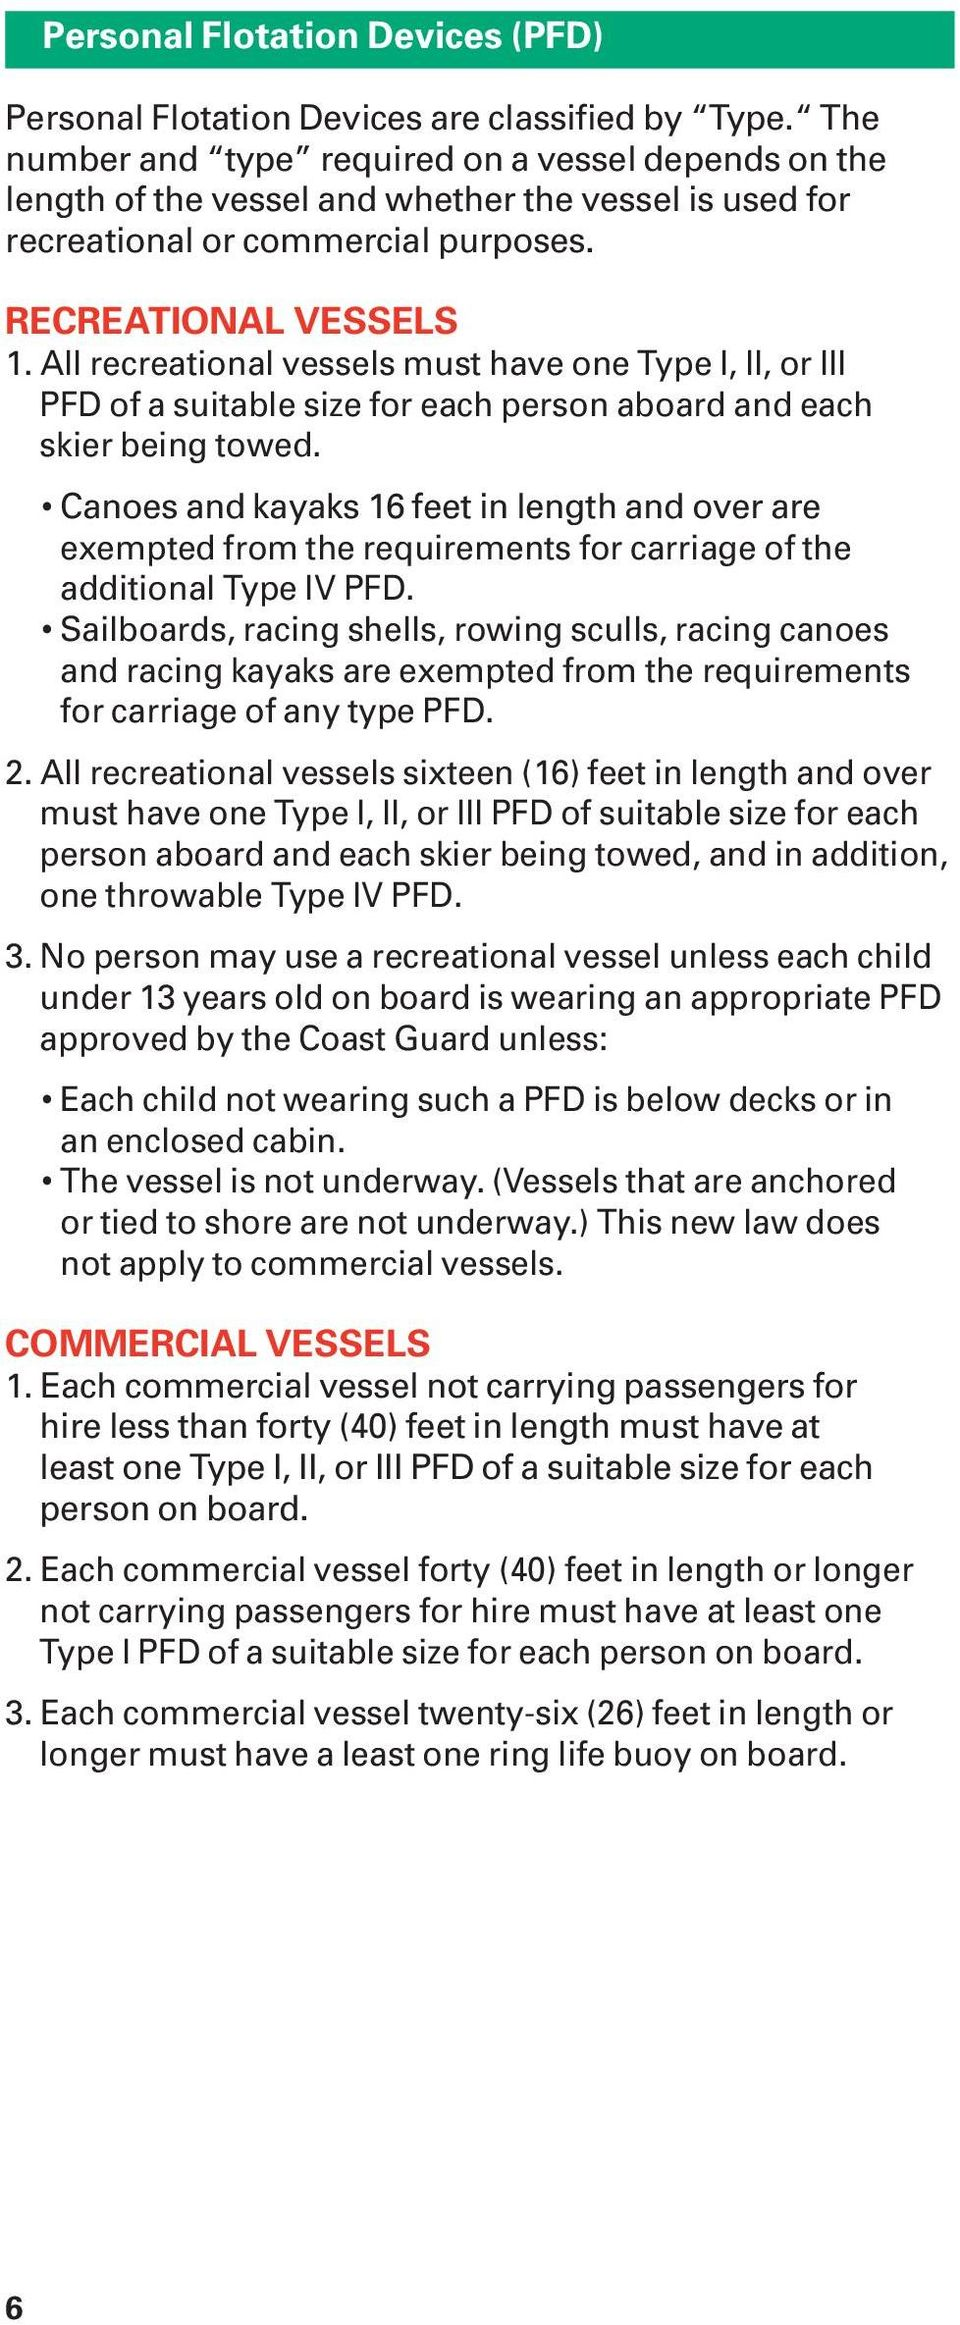 All recreational vessels must have one Type I, II, or III PFD of a suitable size for each person aboard and each skier being towed.